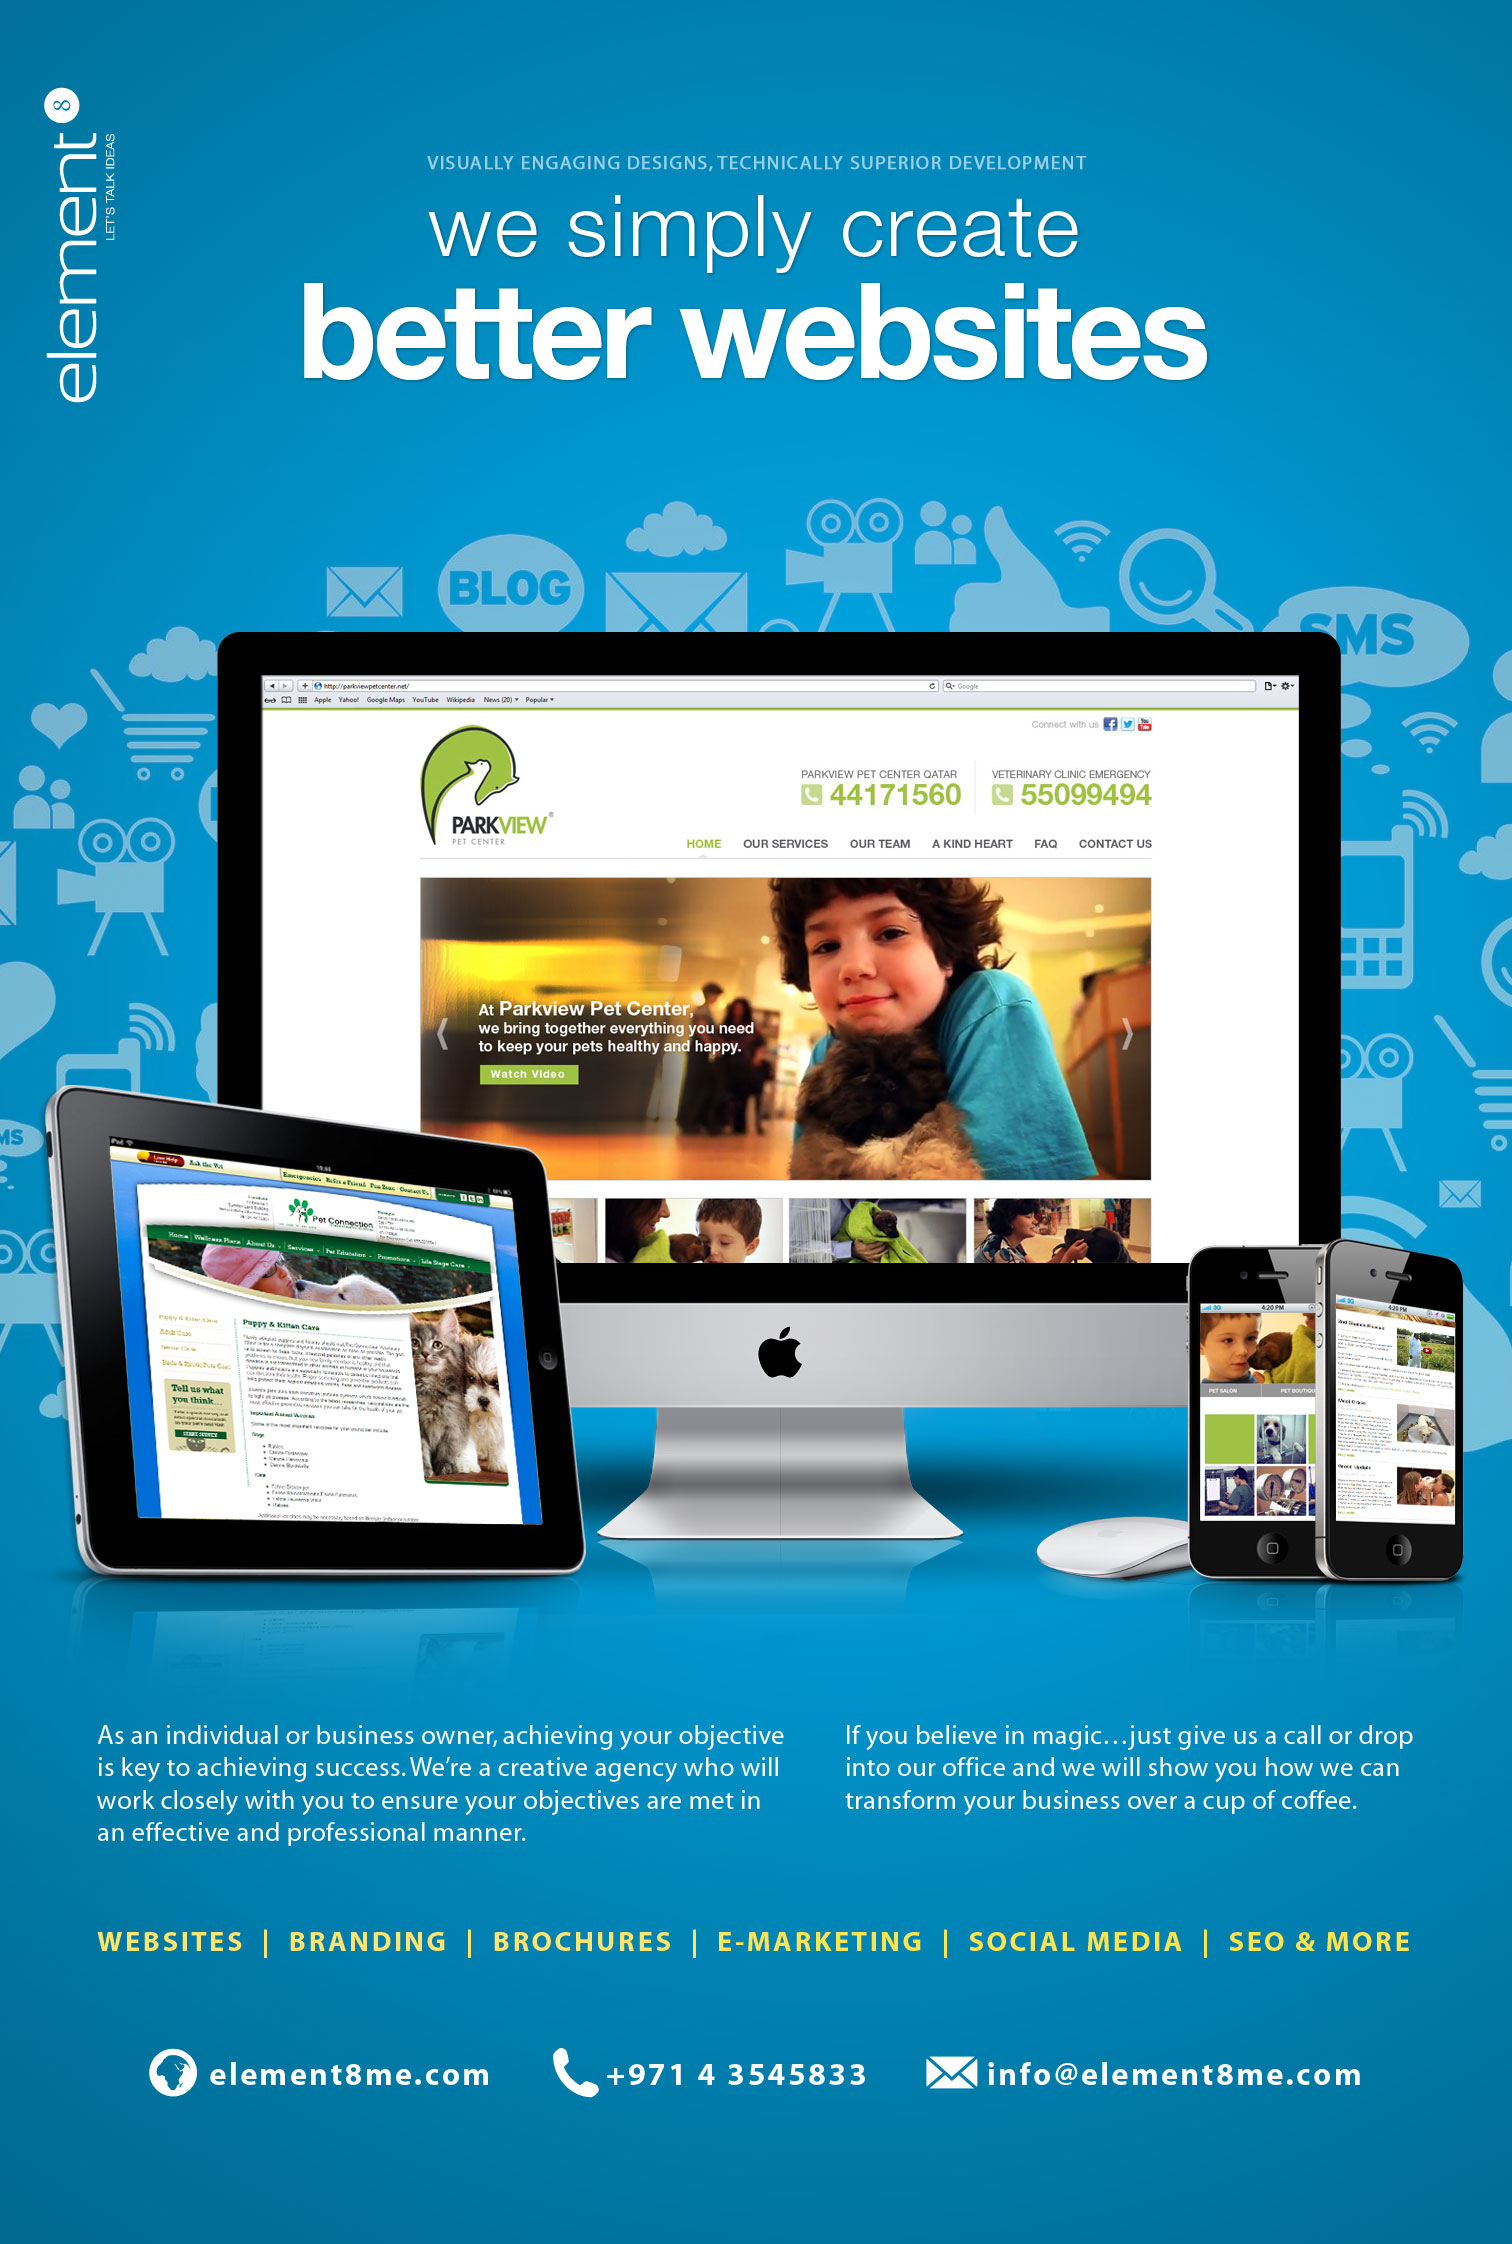 effective home office design with Our New Web Design Ad Published In Dubai Based Pet Me Magazine on Best Resume 25512608 also Alzheimers Society Business Cards additionally Earthquakes 20background besides glassandstainlessuk co also Reception Led Display.